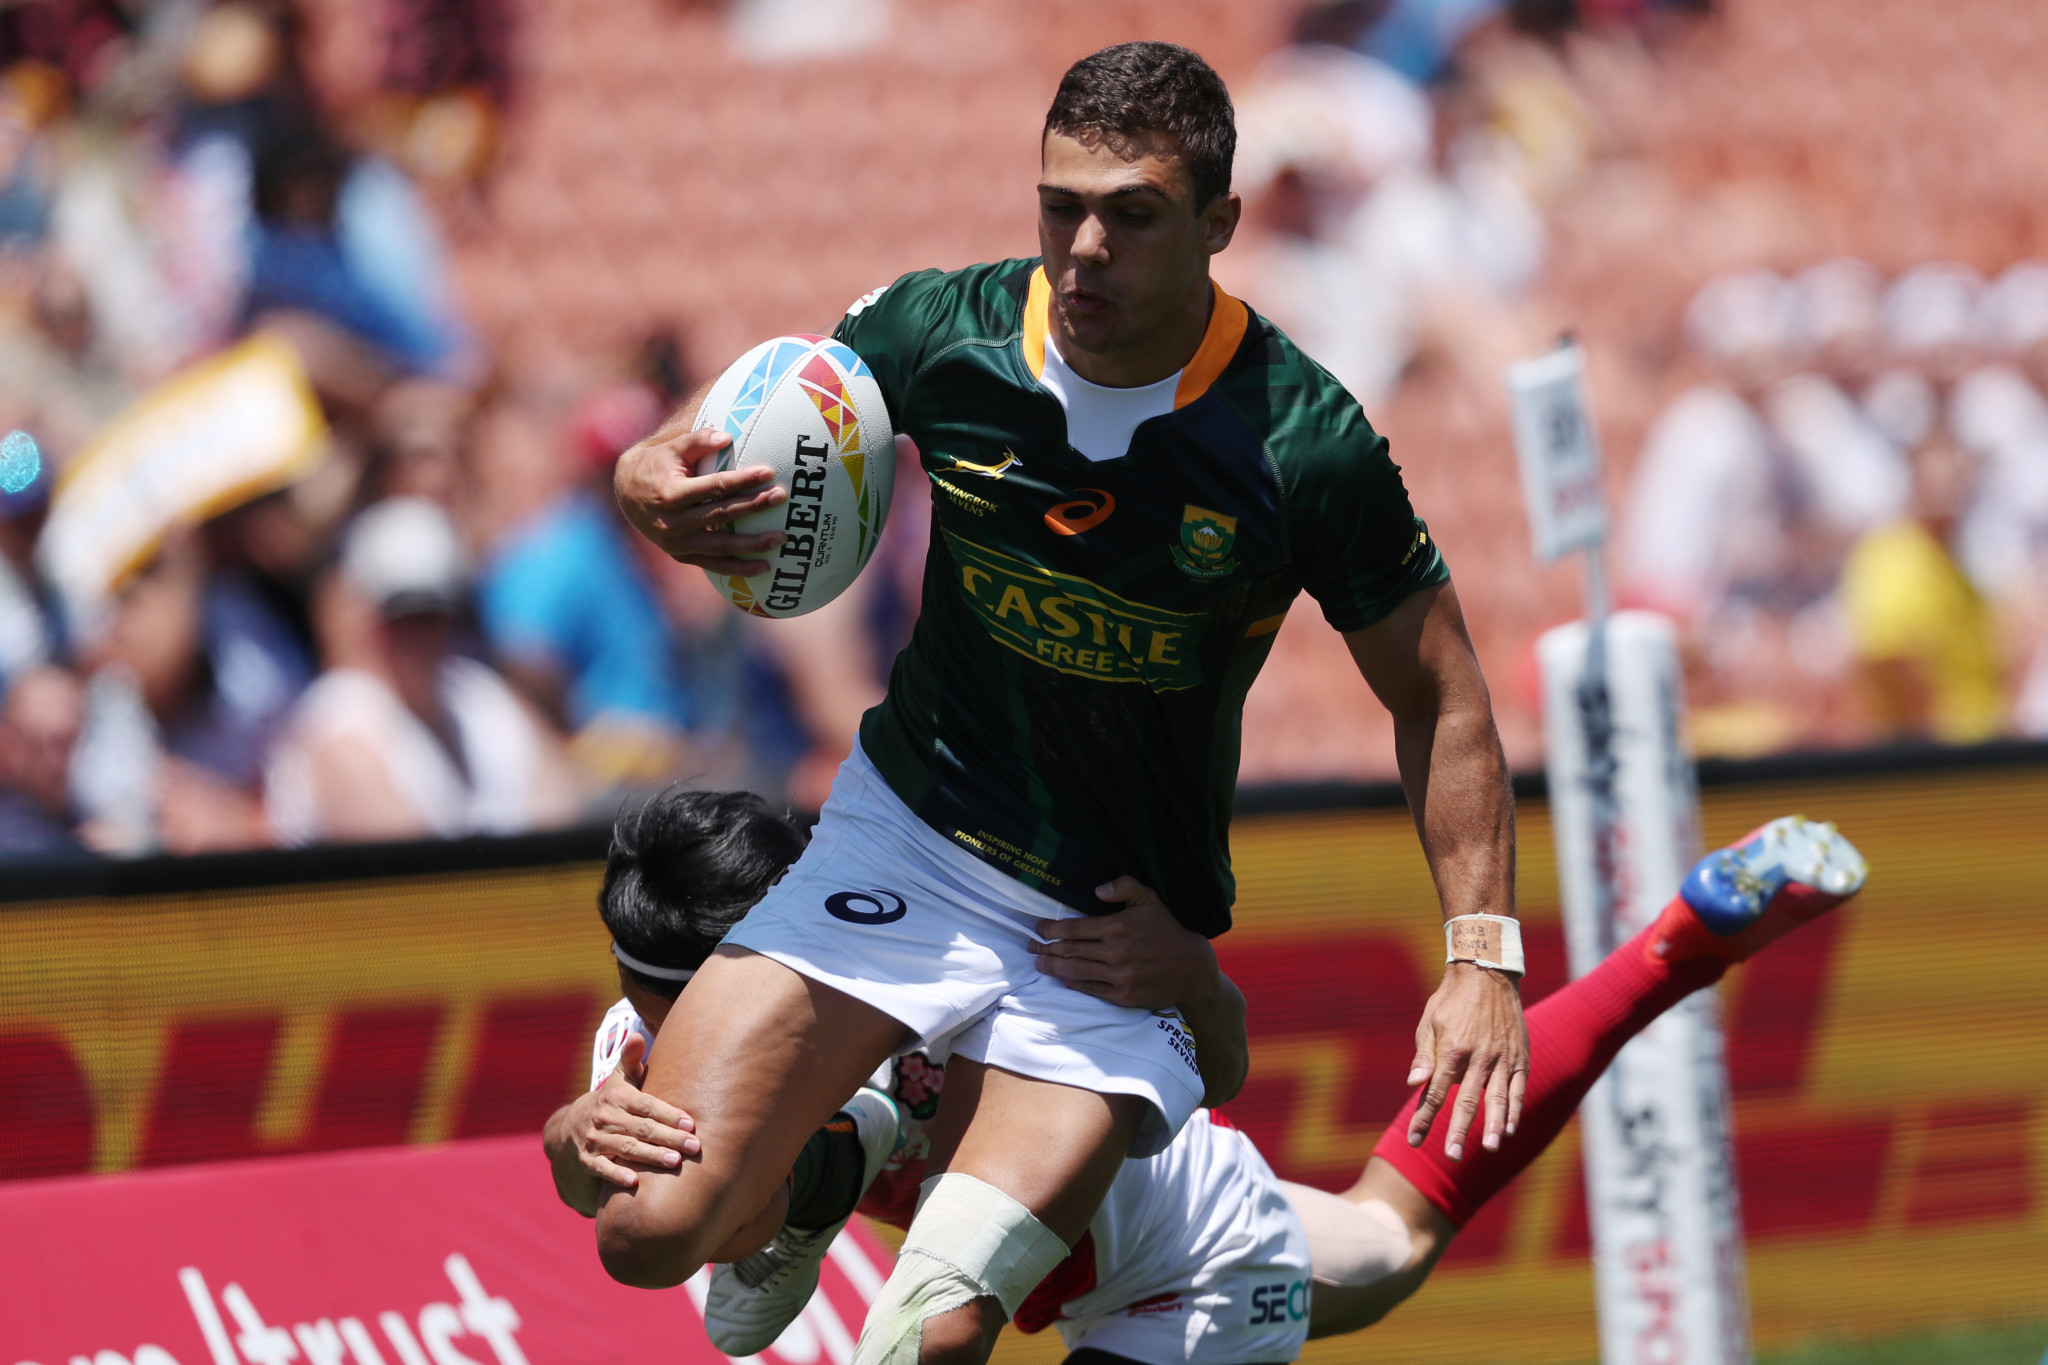 South Africa waltz to World Rugby Sevens Series title and British women win again